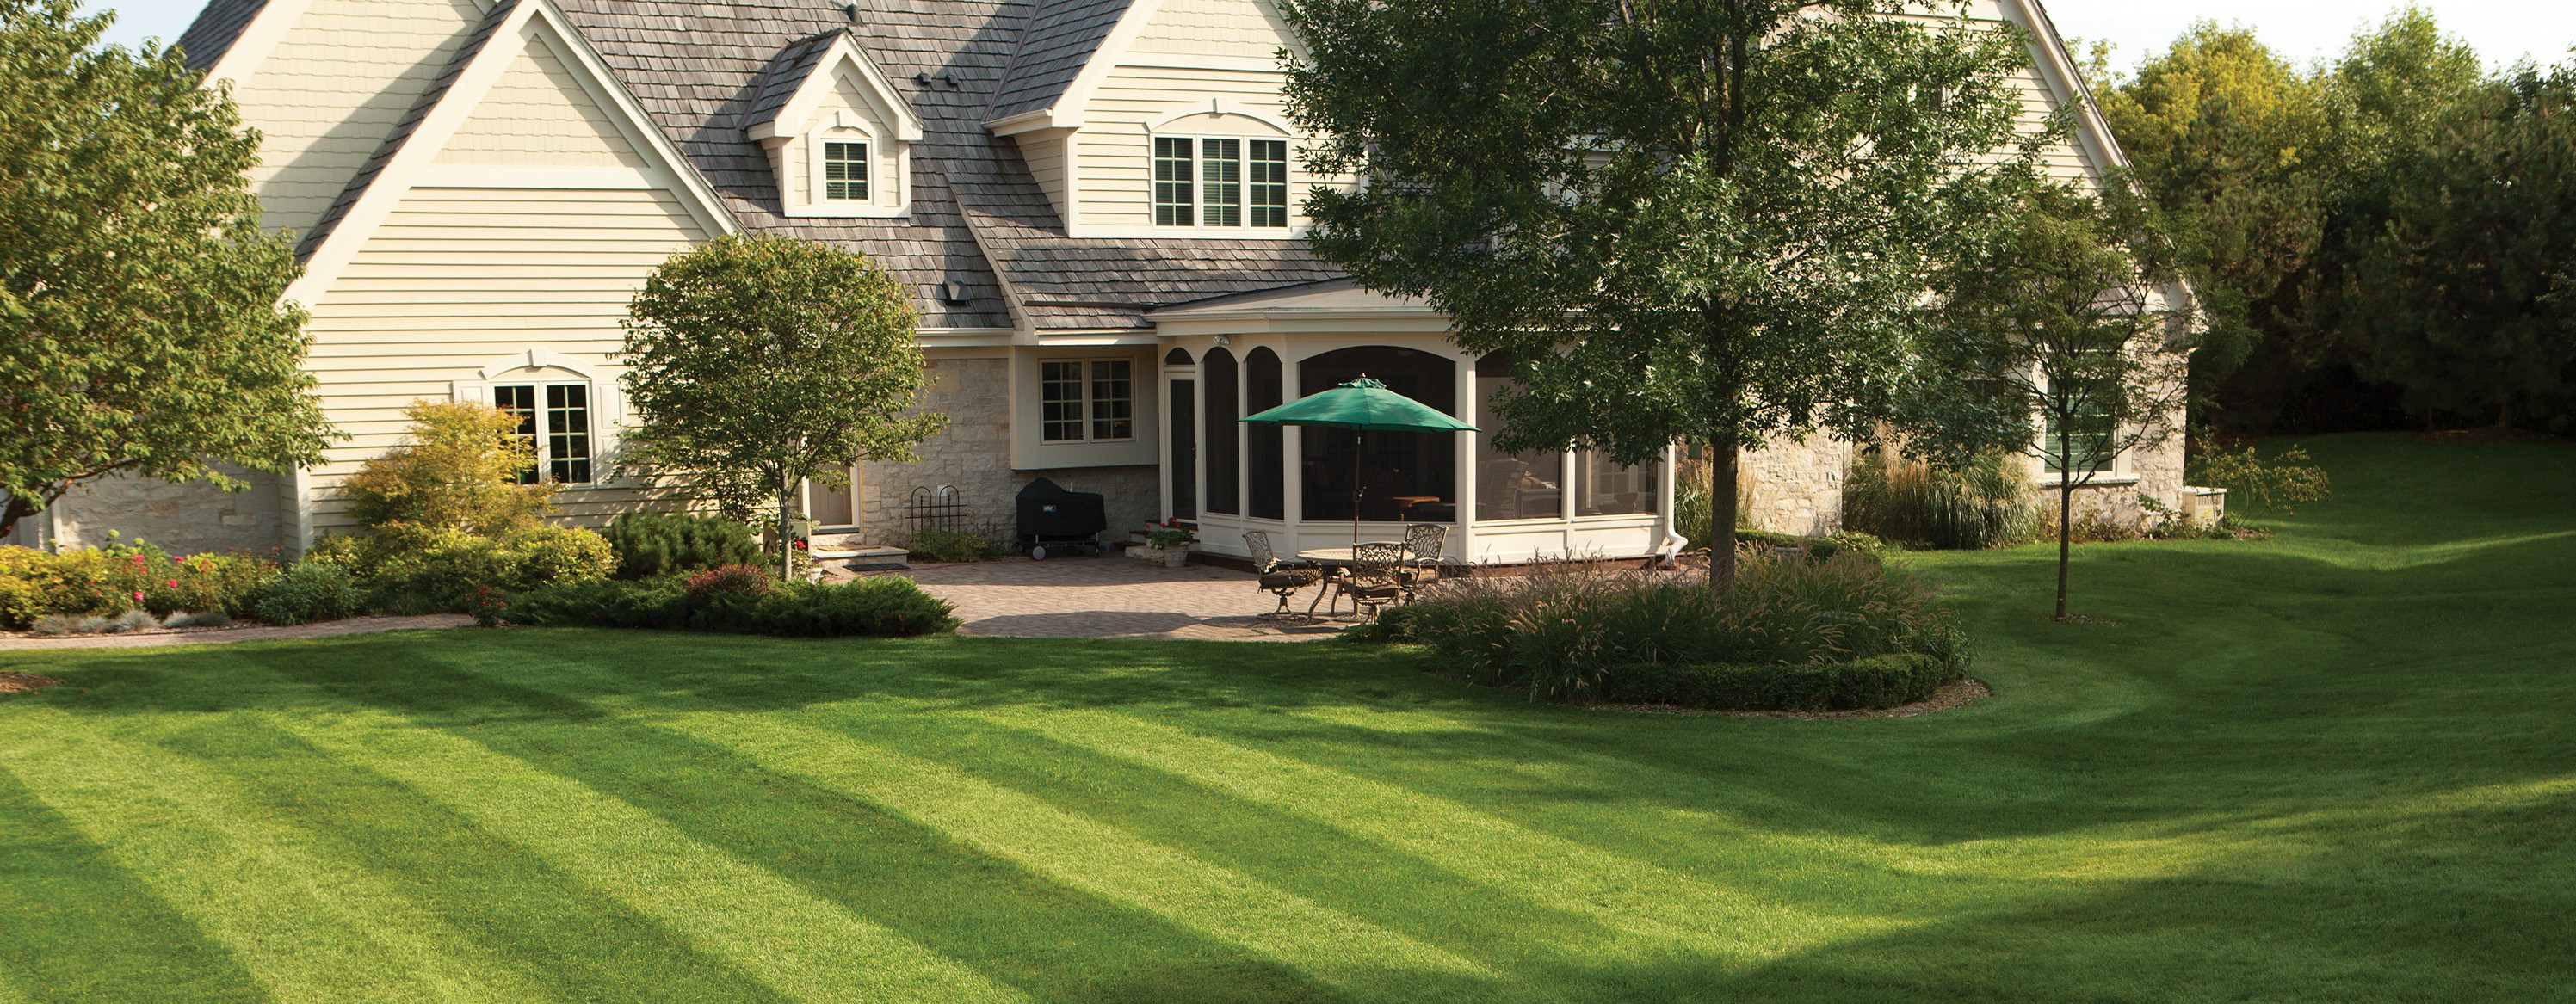 DuPage Lawncare Gallery